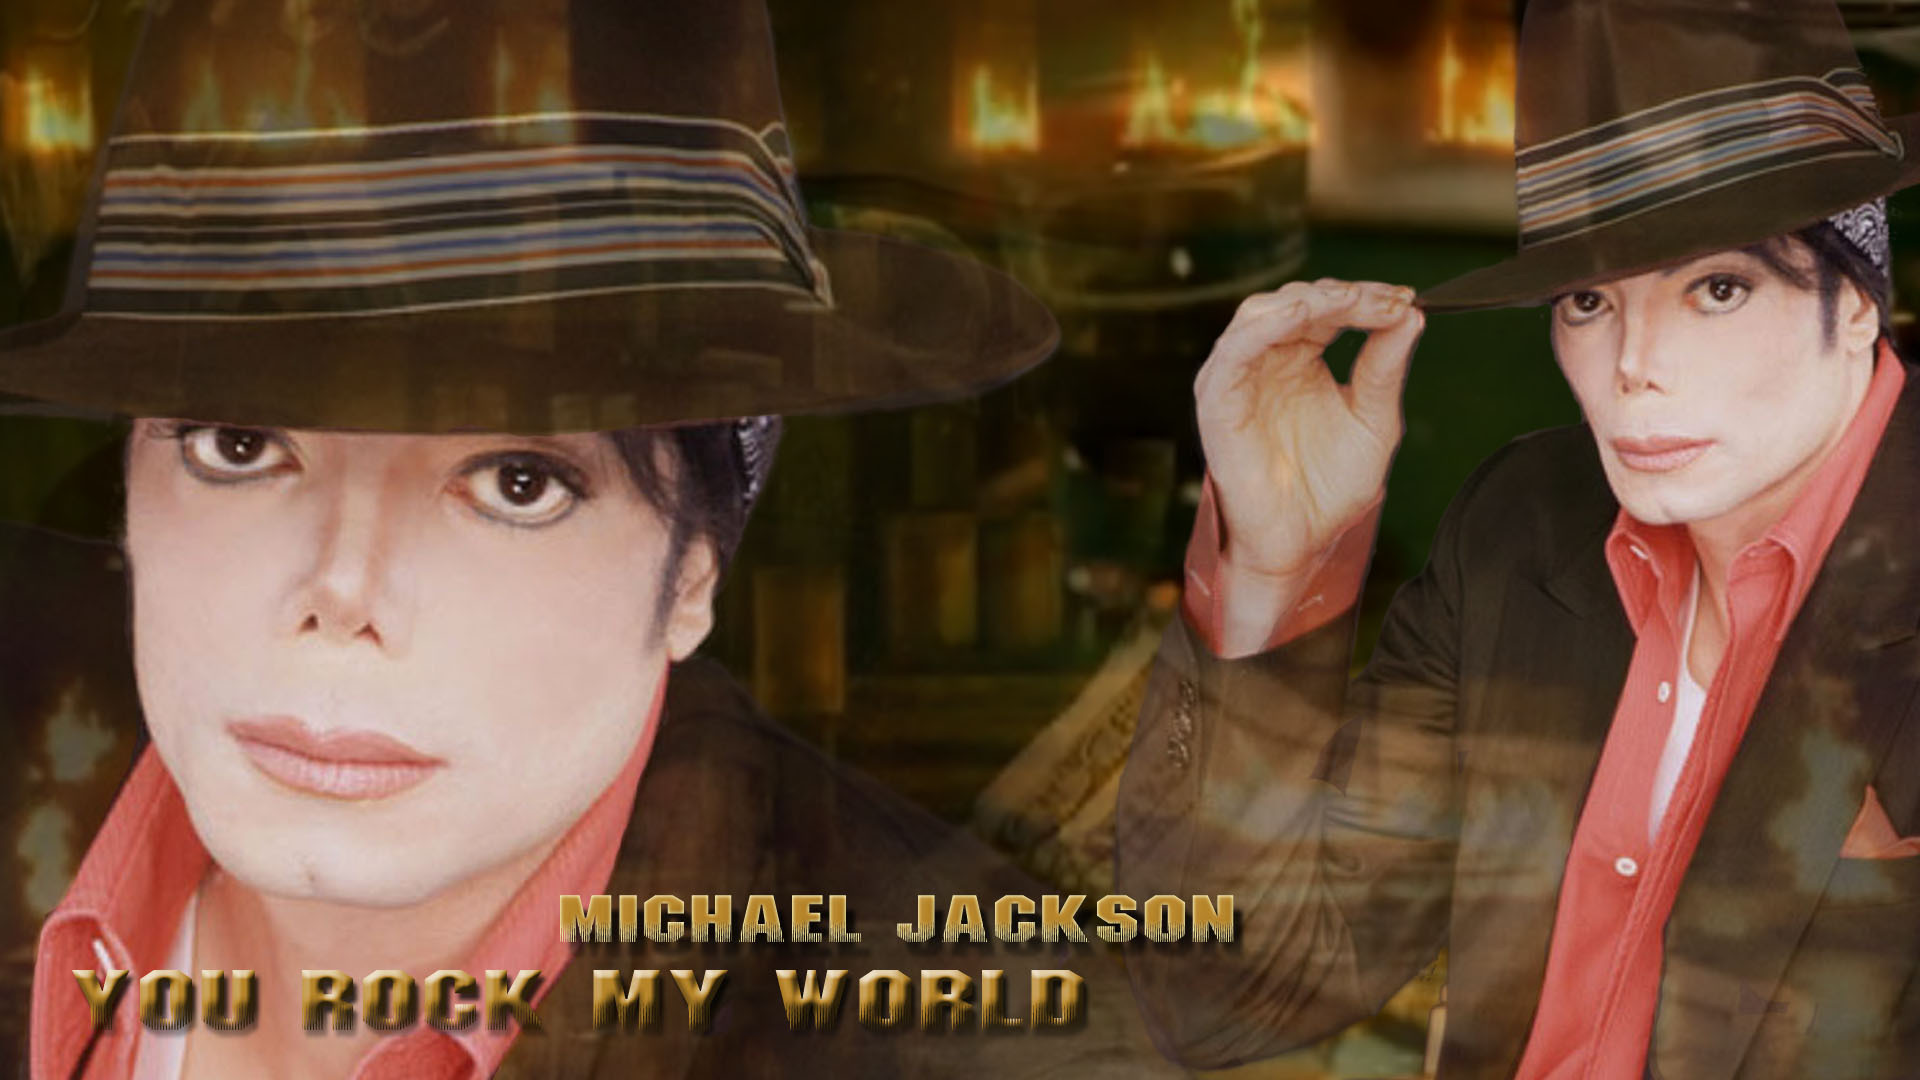 Michael Jackson You Rock My World - michael-jackson  wallpaper